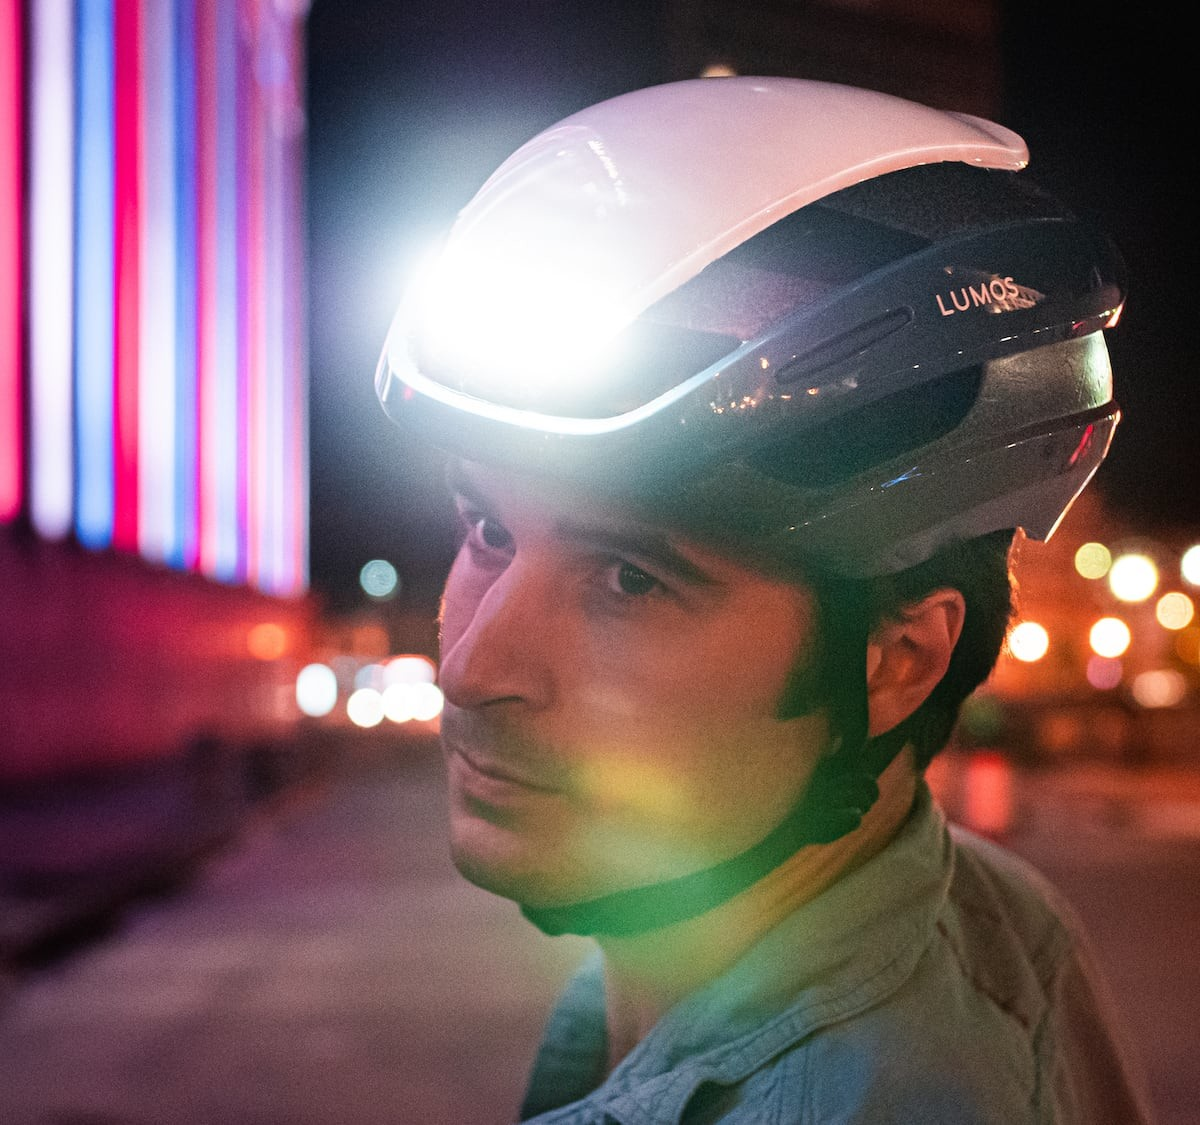 Lumos Ultra LED Bike Helmet has built-in turn signals and more safety features